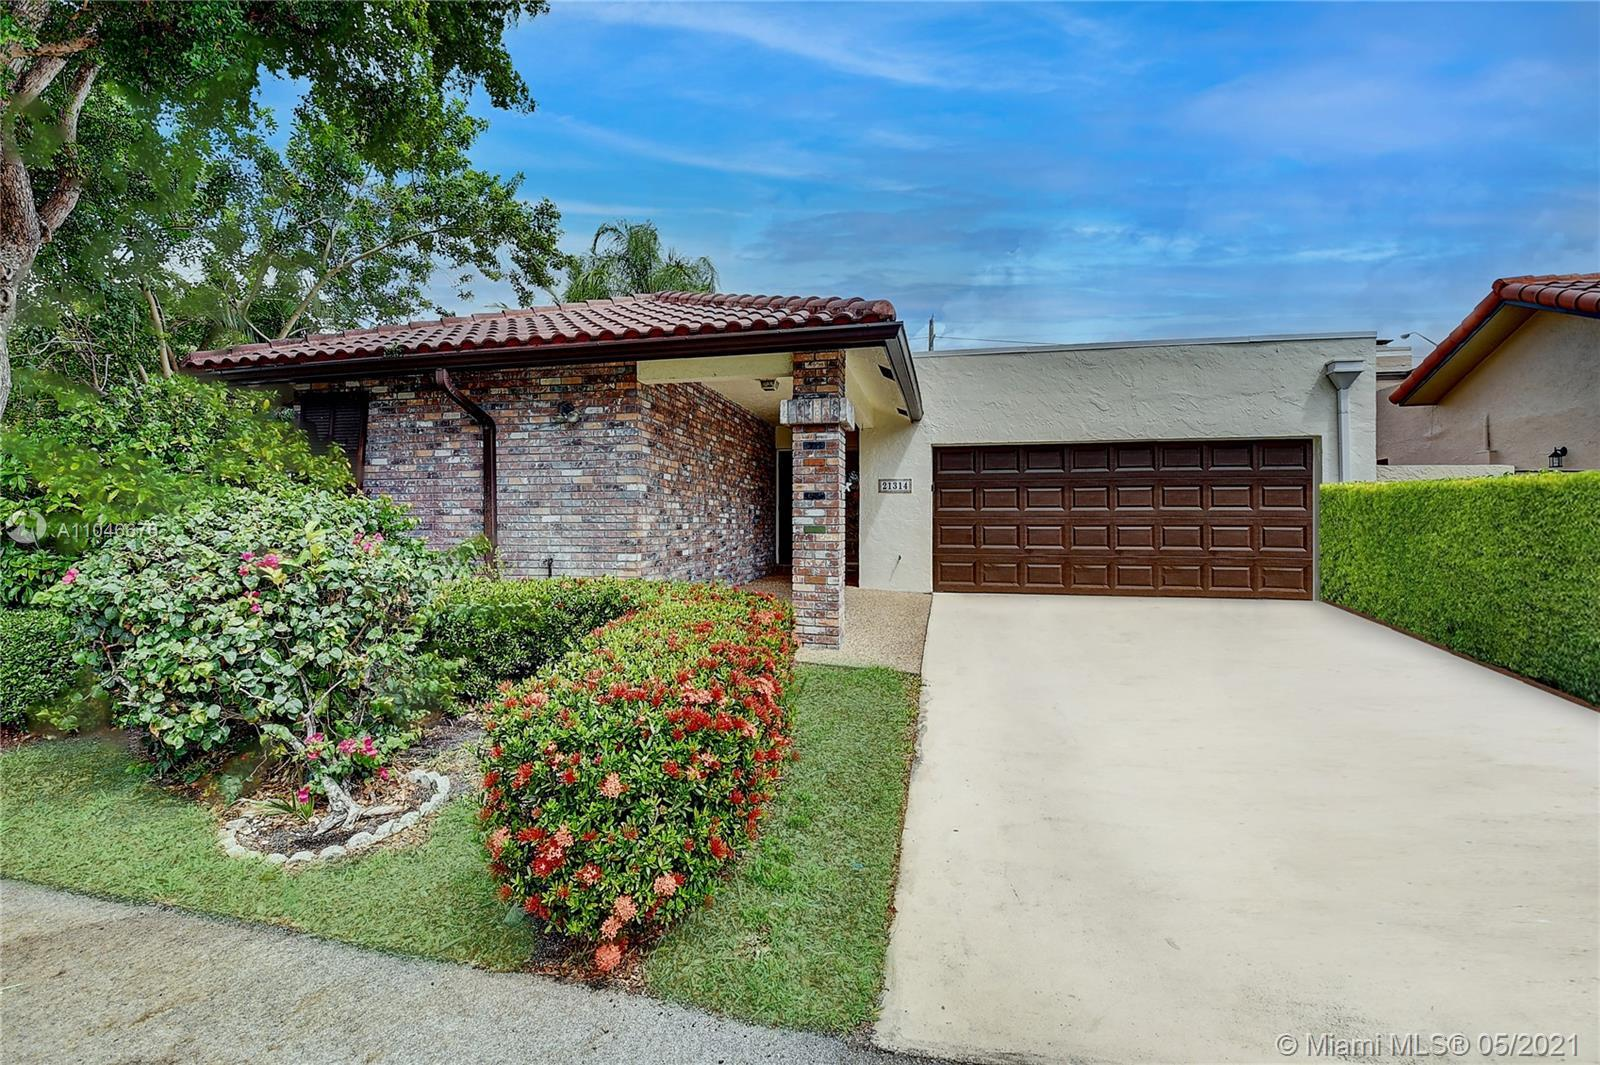 Located in the heart of Boca Raton, this adorable, 3 bedroom, 2.5 bath home is finally available. Th